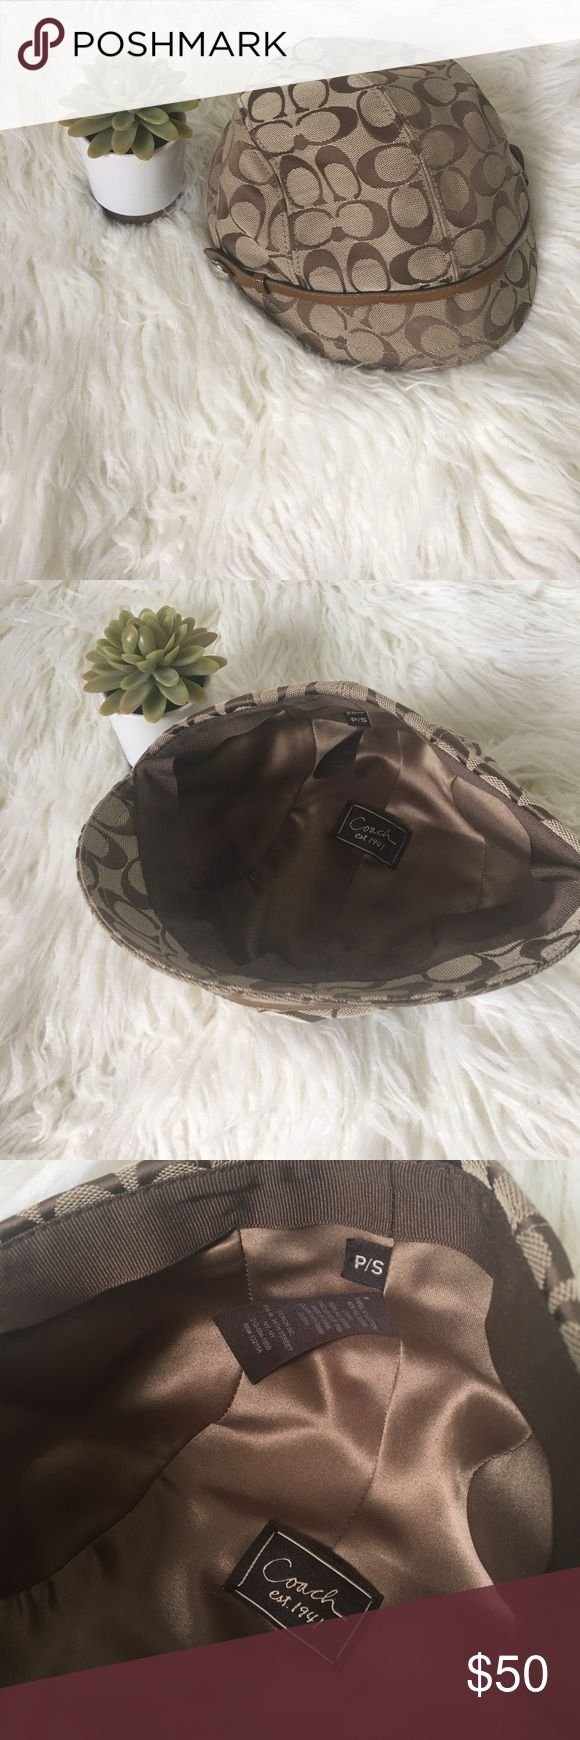 """🆕 Coach Hat Brand new without tags, Authentic Coach Hat. Brown & tan. Traditional Coach """"C"""" design. Size small. Coach Accessories Hats"""